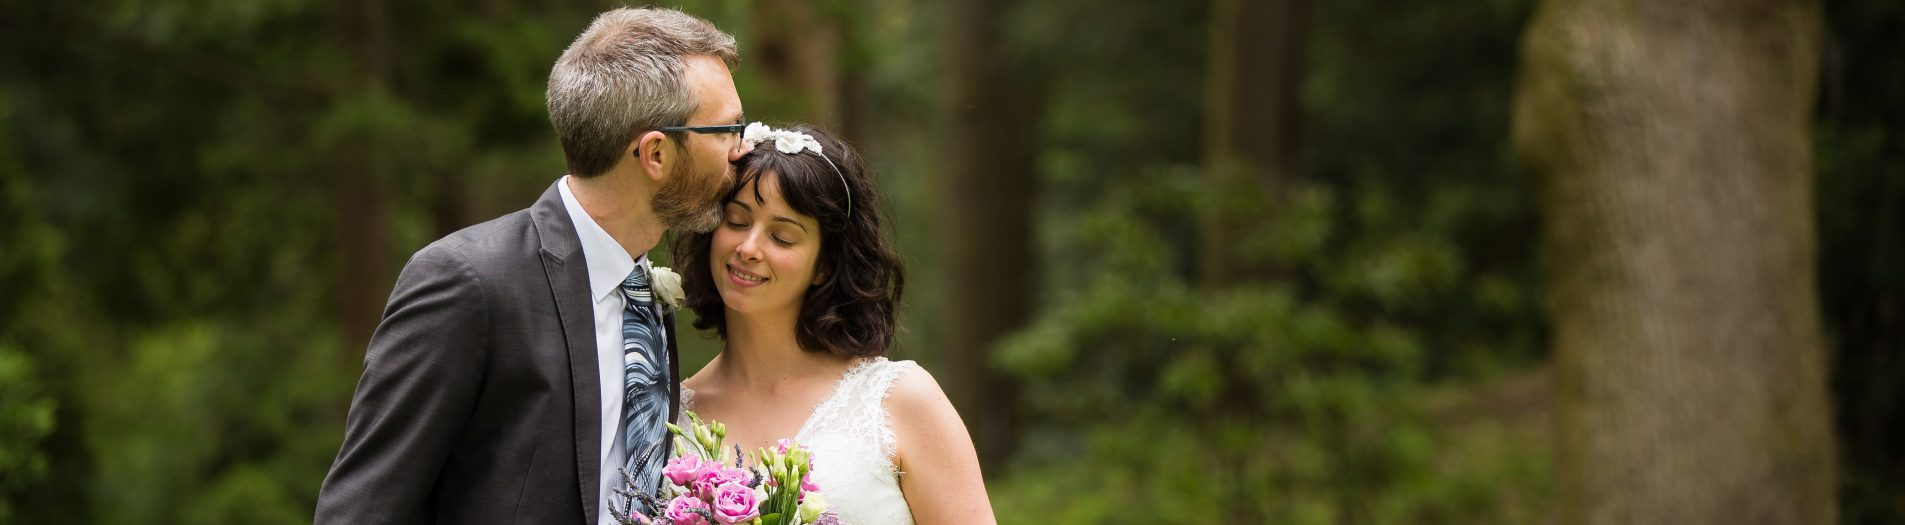 Intimate wedding or elopement - what does that mean?